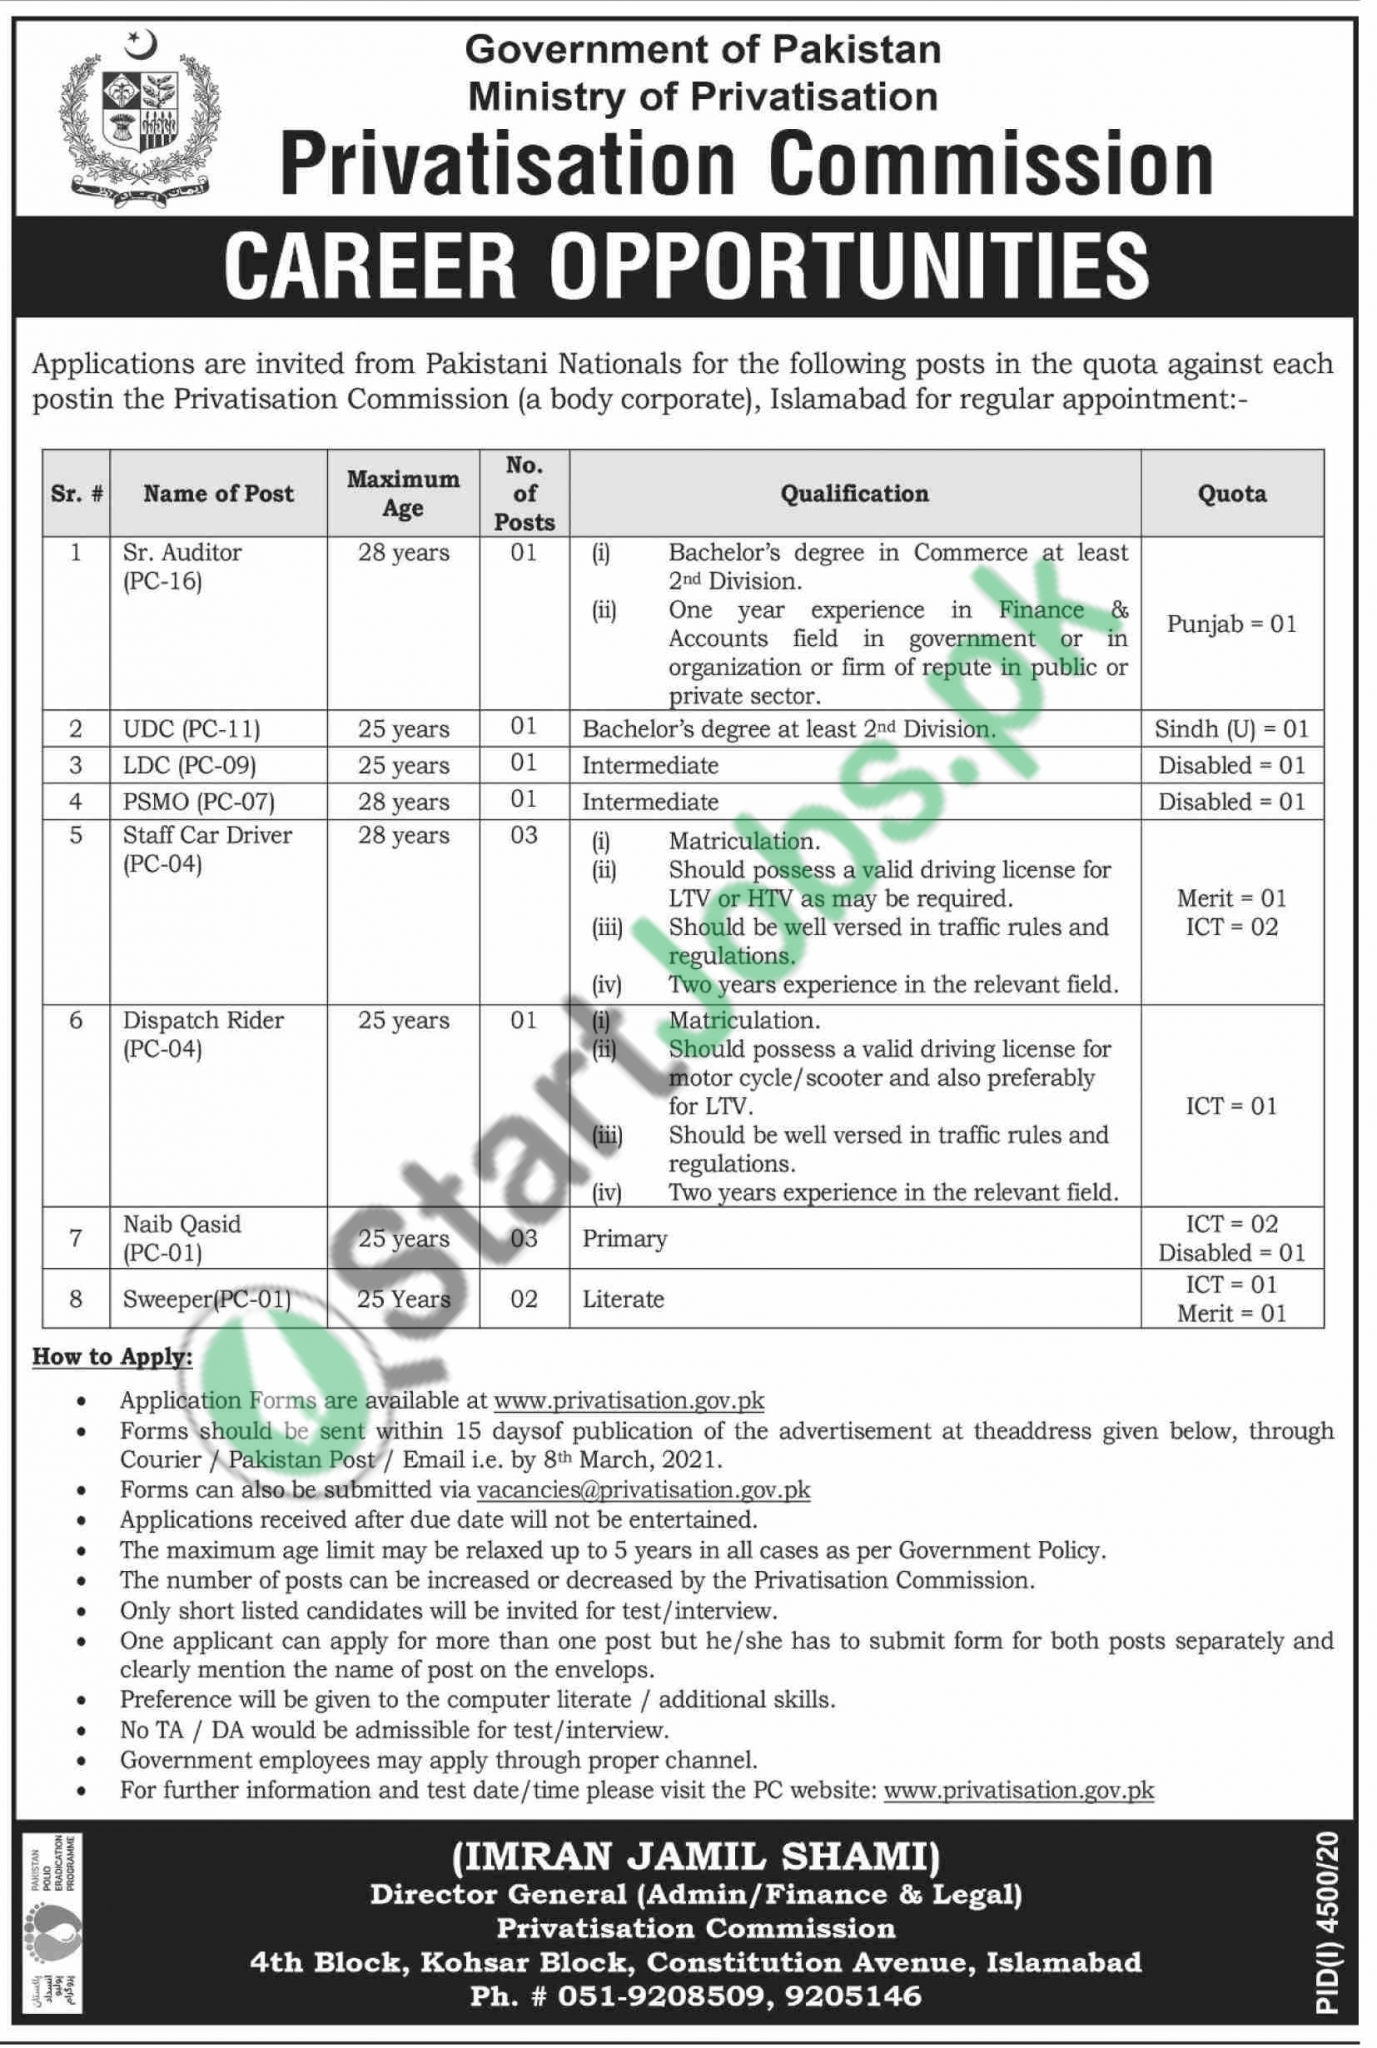 Ministry of Privatization Jobs Application Form 2021